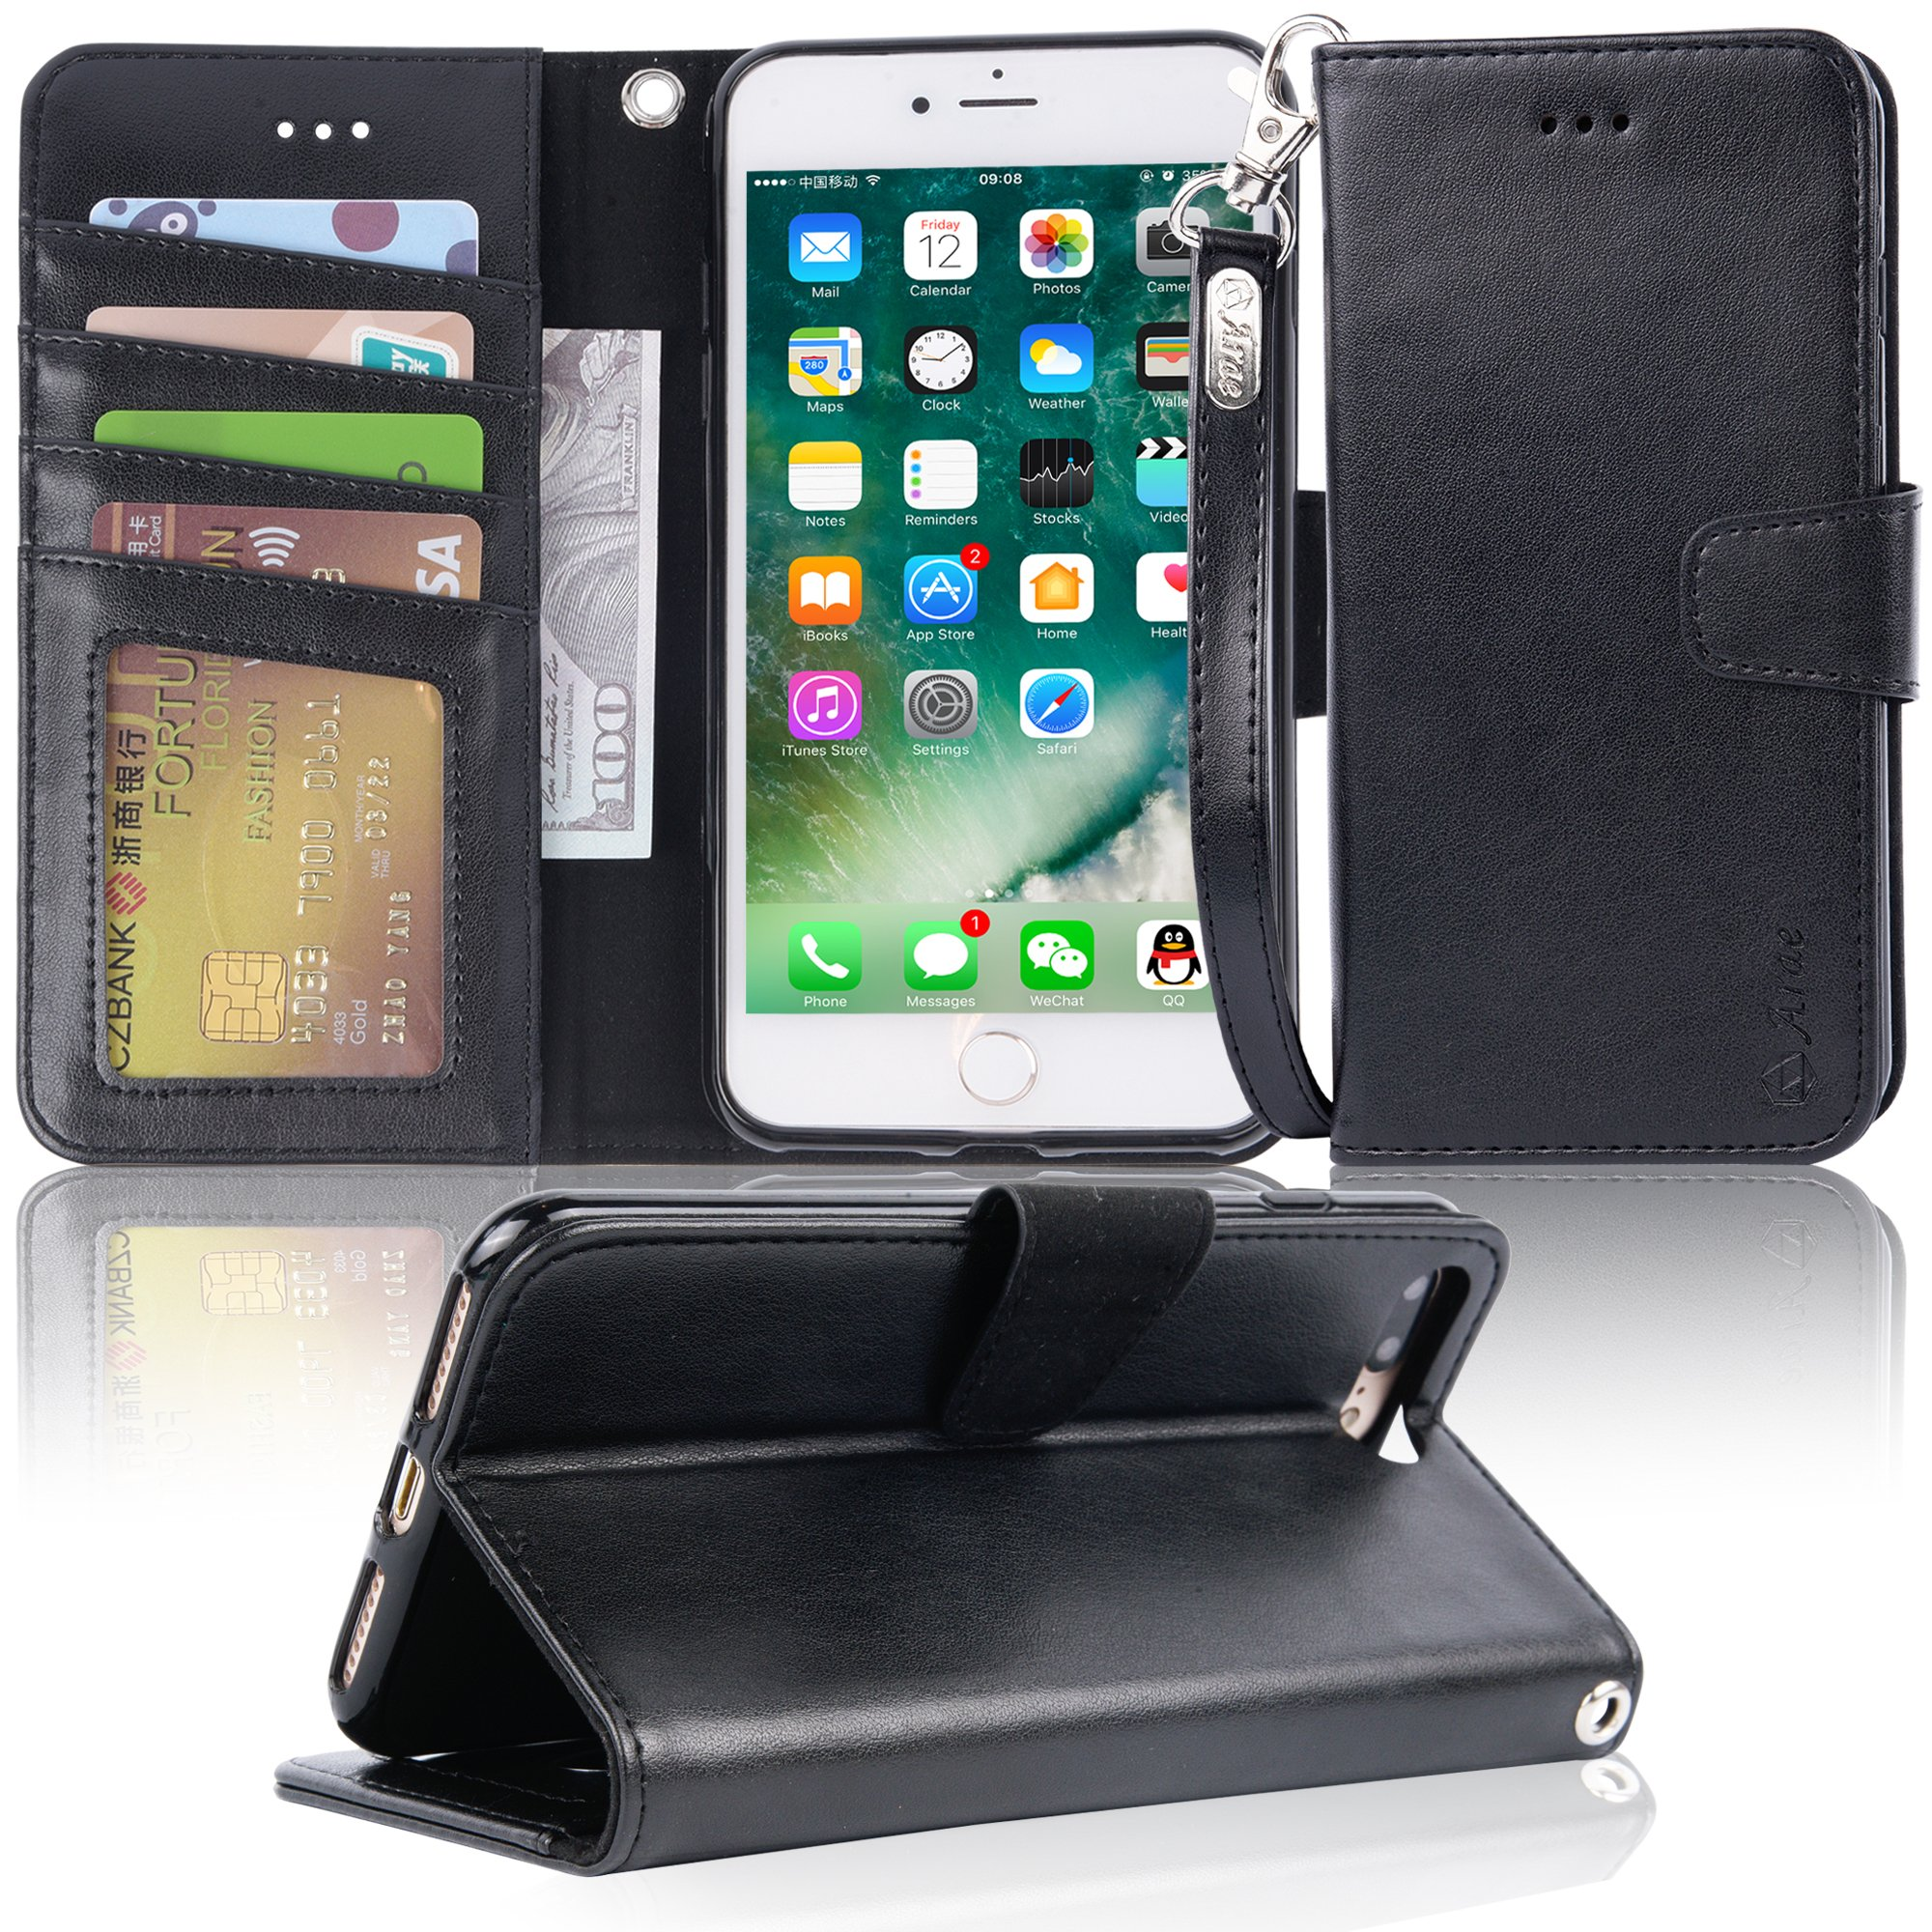 iphone 7 plus case, iPhone 8 plus case, Arae PU leather wallet Case with Kickstand and Flip Cover for iPhone 7 plus (2016)/iPhone 8 plus (2017) - Black by Arae (Image #1)